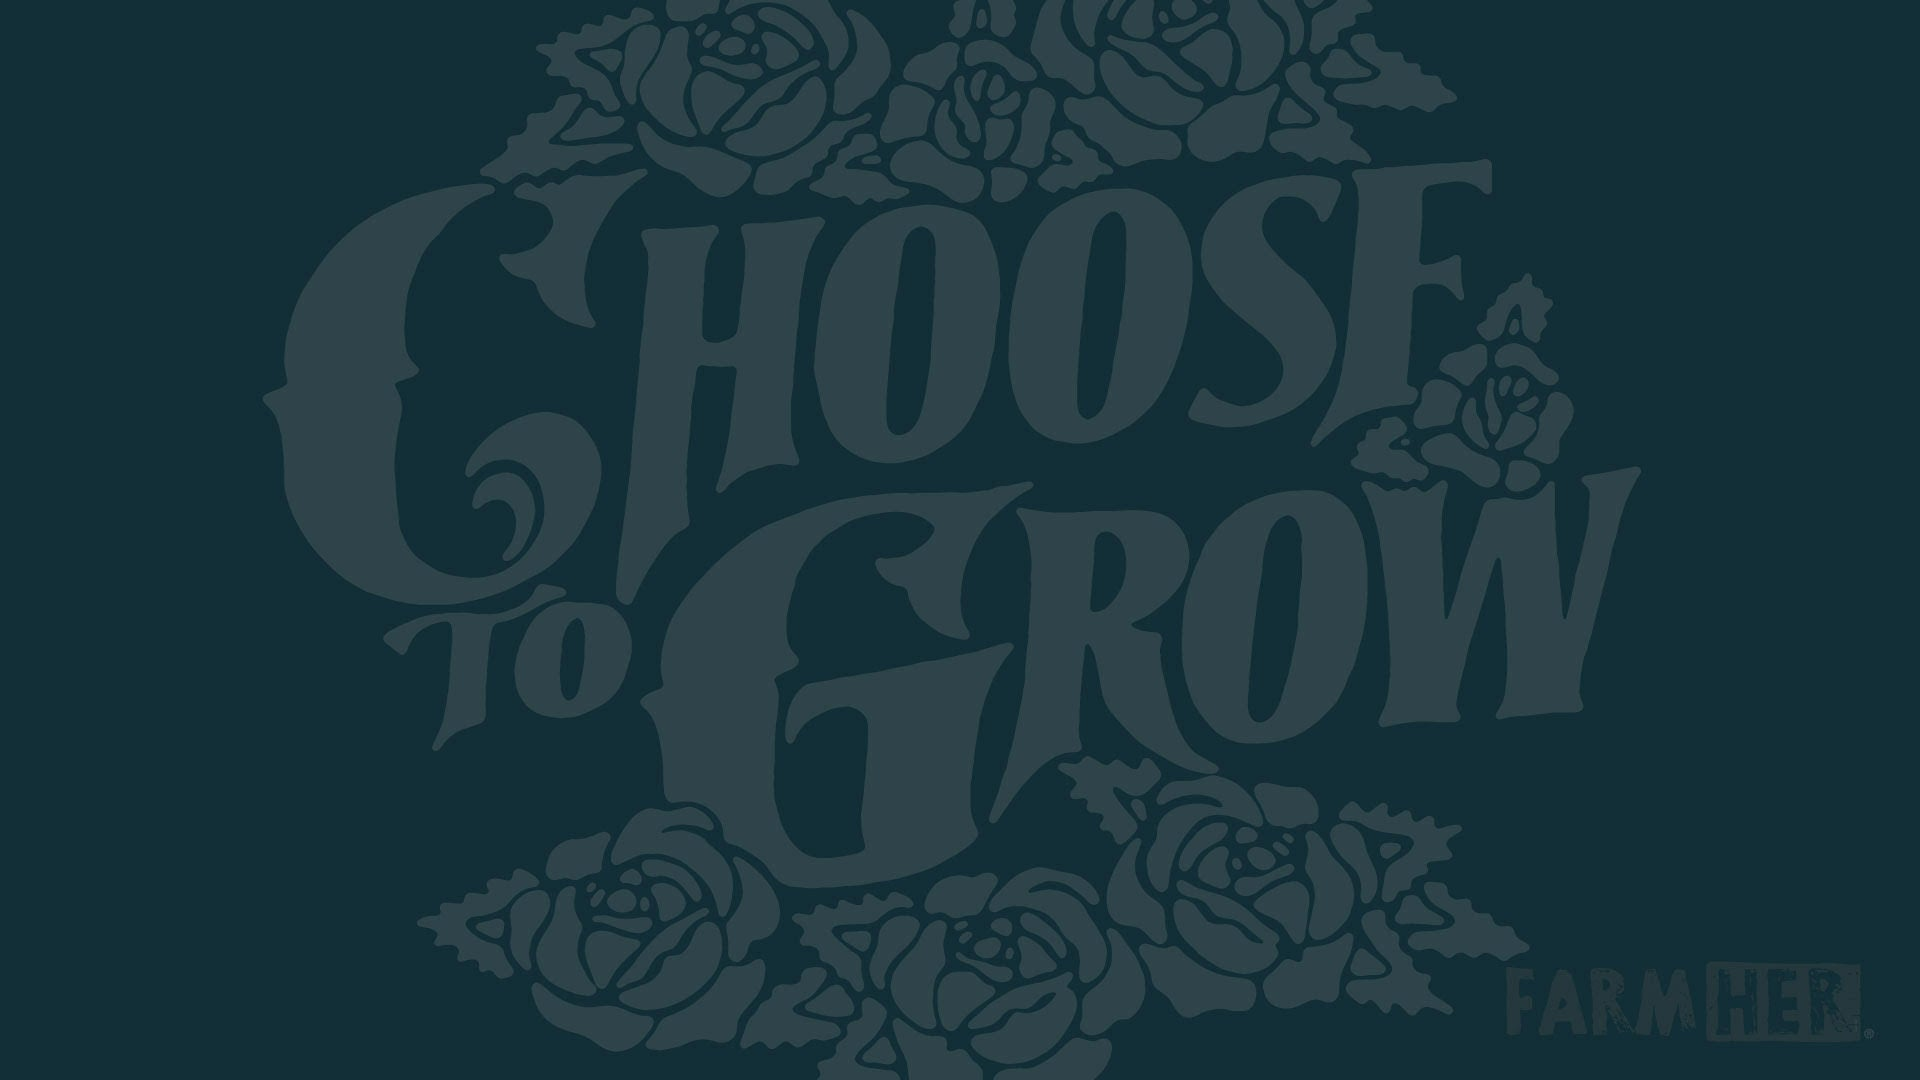 """Image reads """"choose to grow"""""""